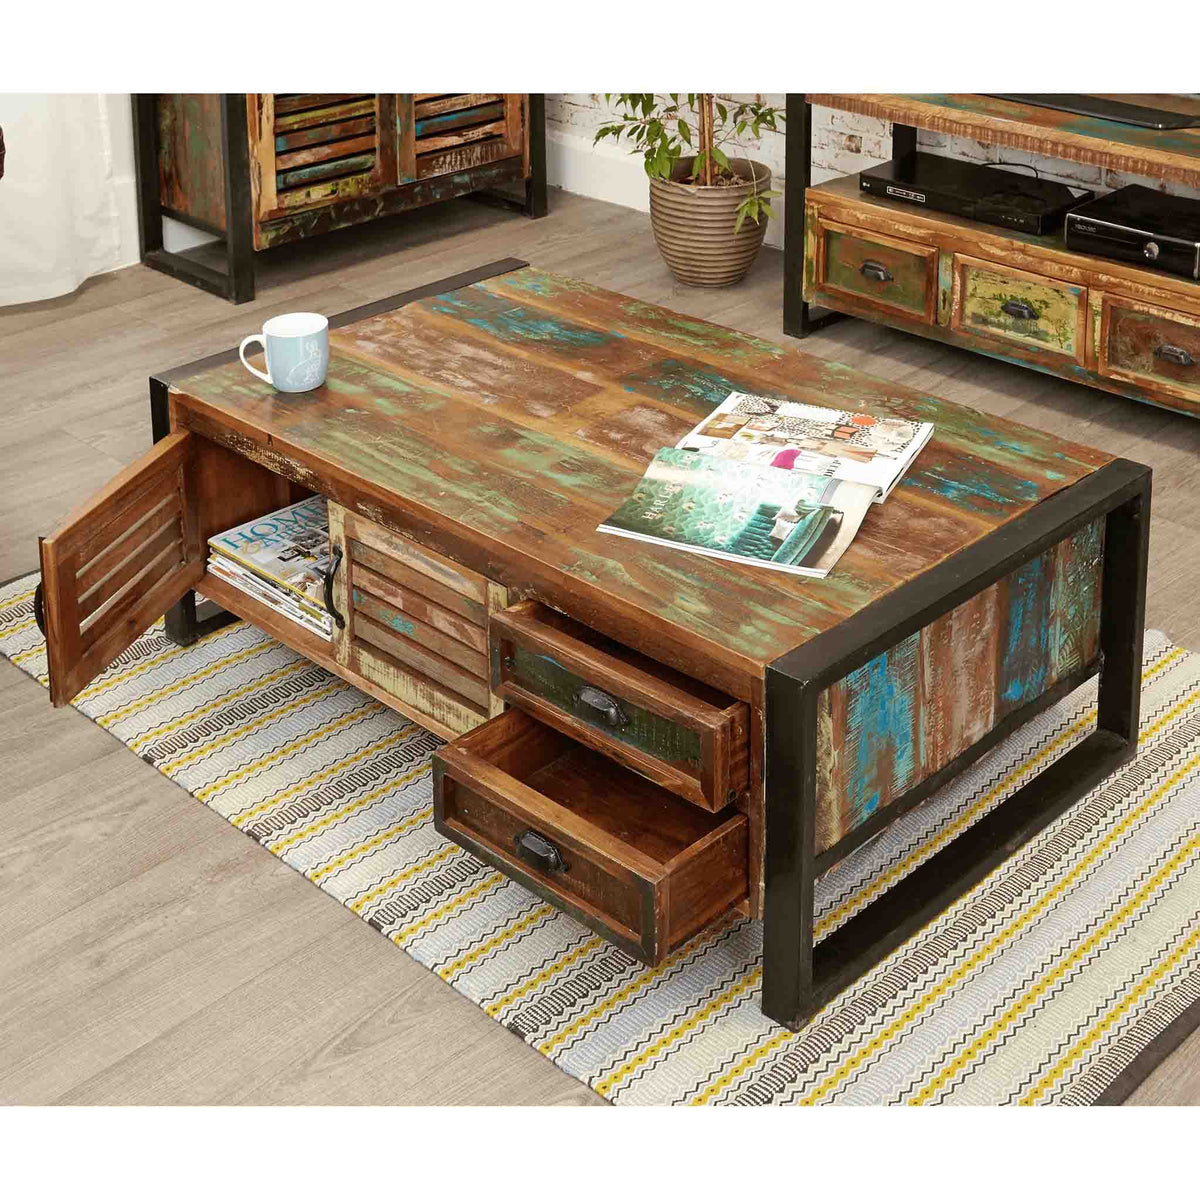 Opened drawer view of The Urban Chic Industrial Reclaimed Wood Large Coffee Table with Storage